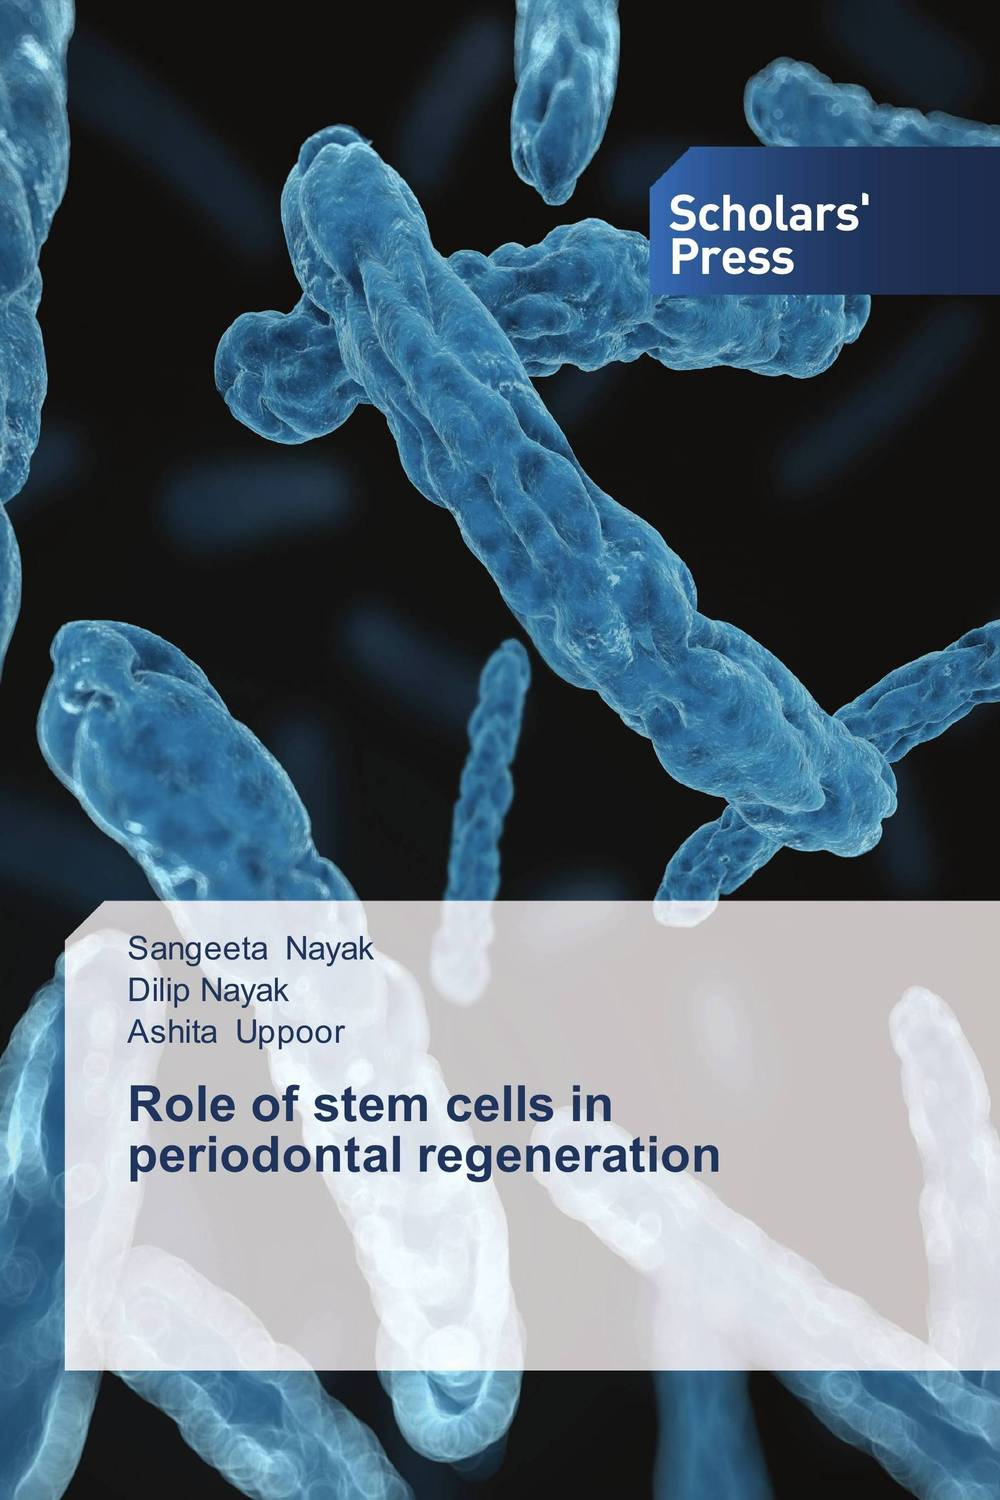 Role of stem cells in periodontal regeneration the role of dna damage and repair in cell aging 4